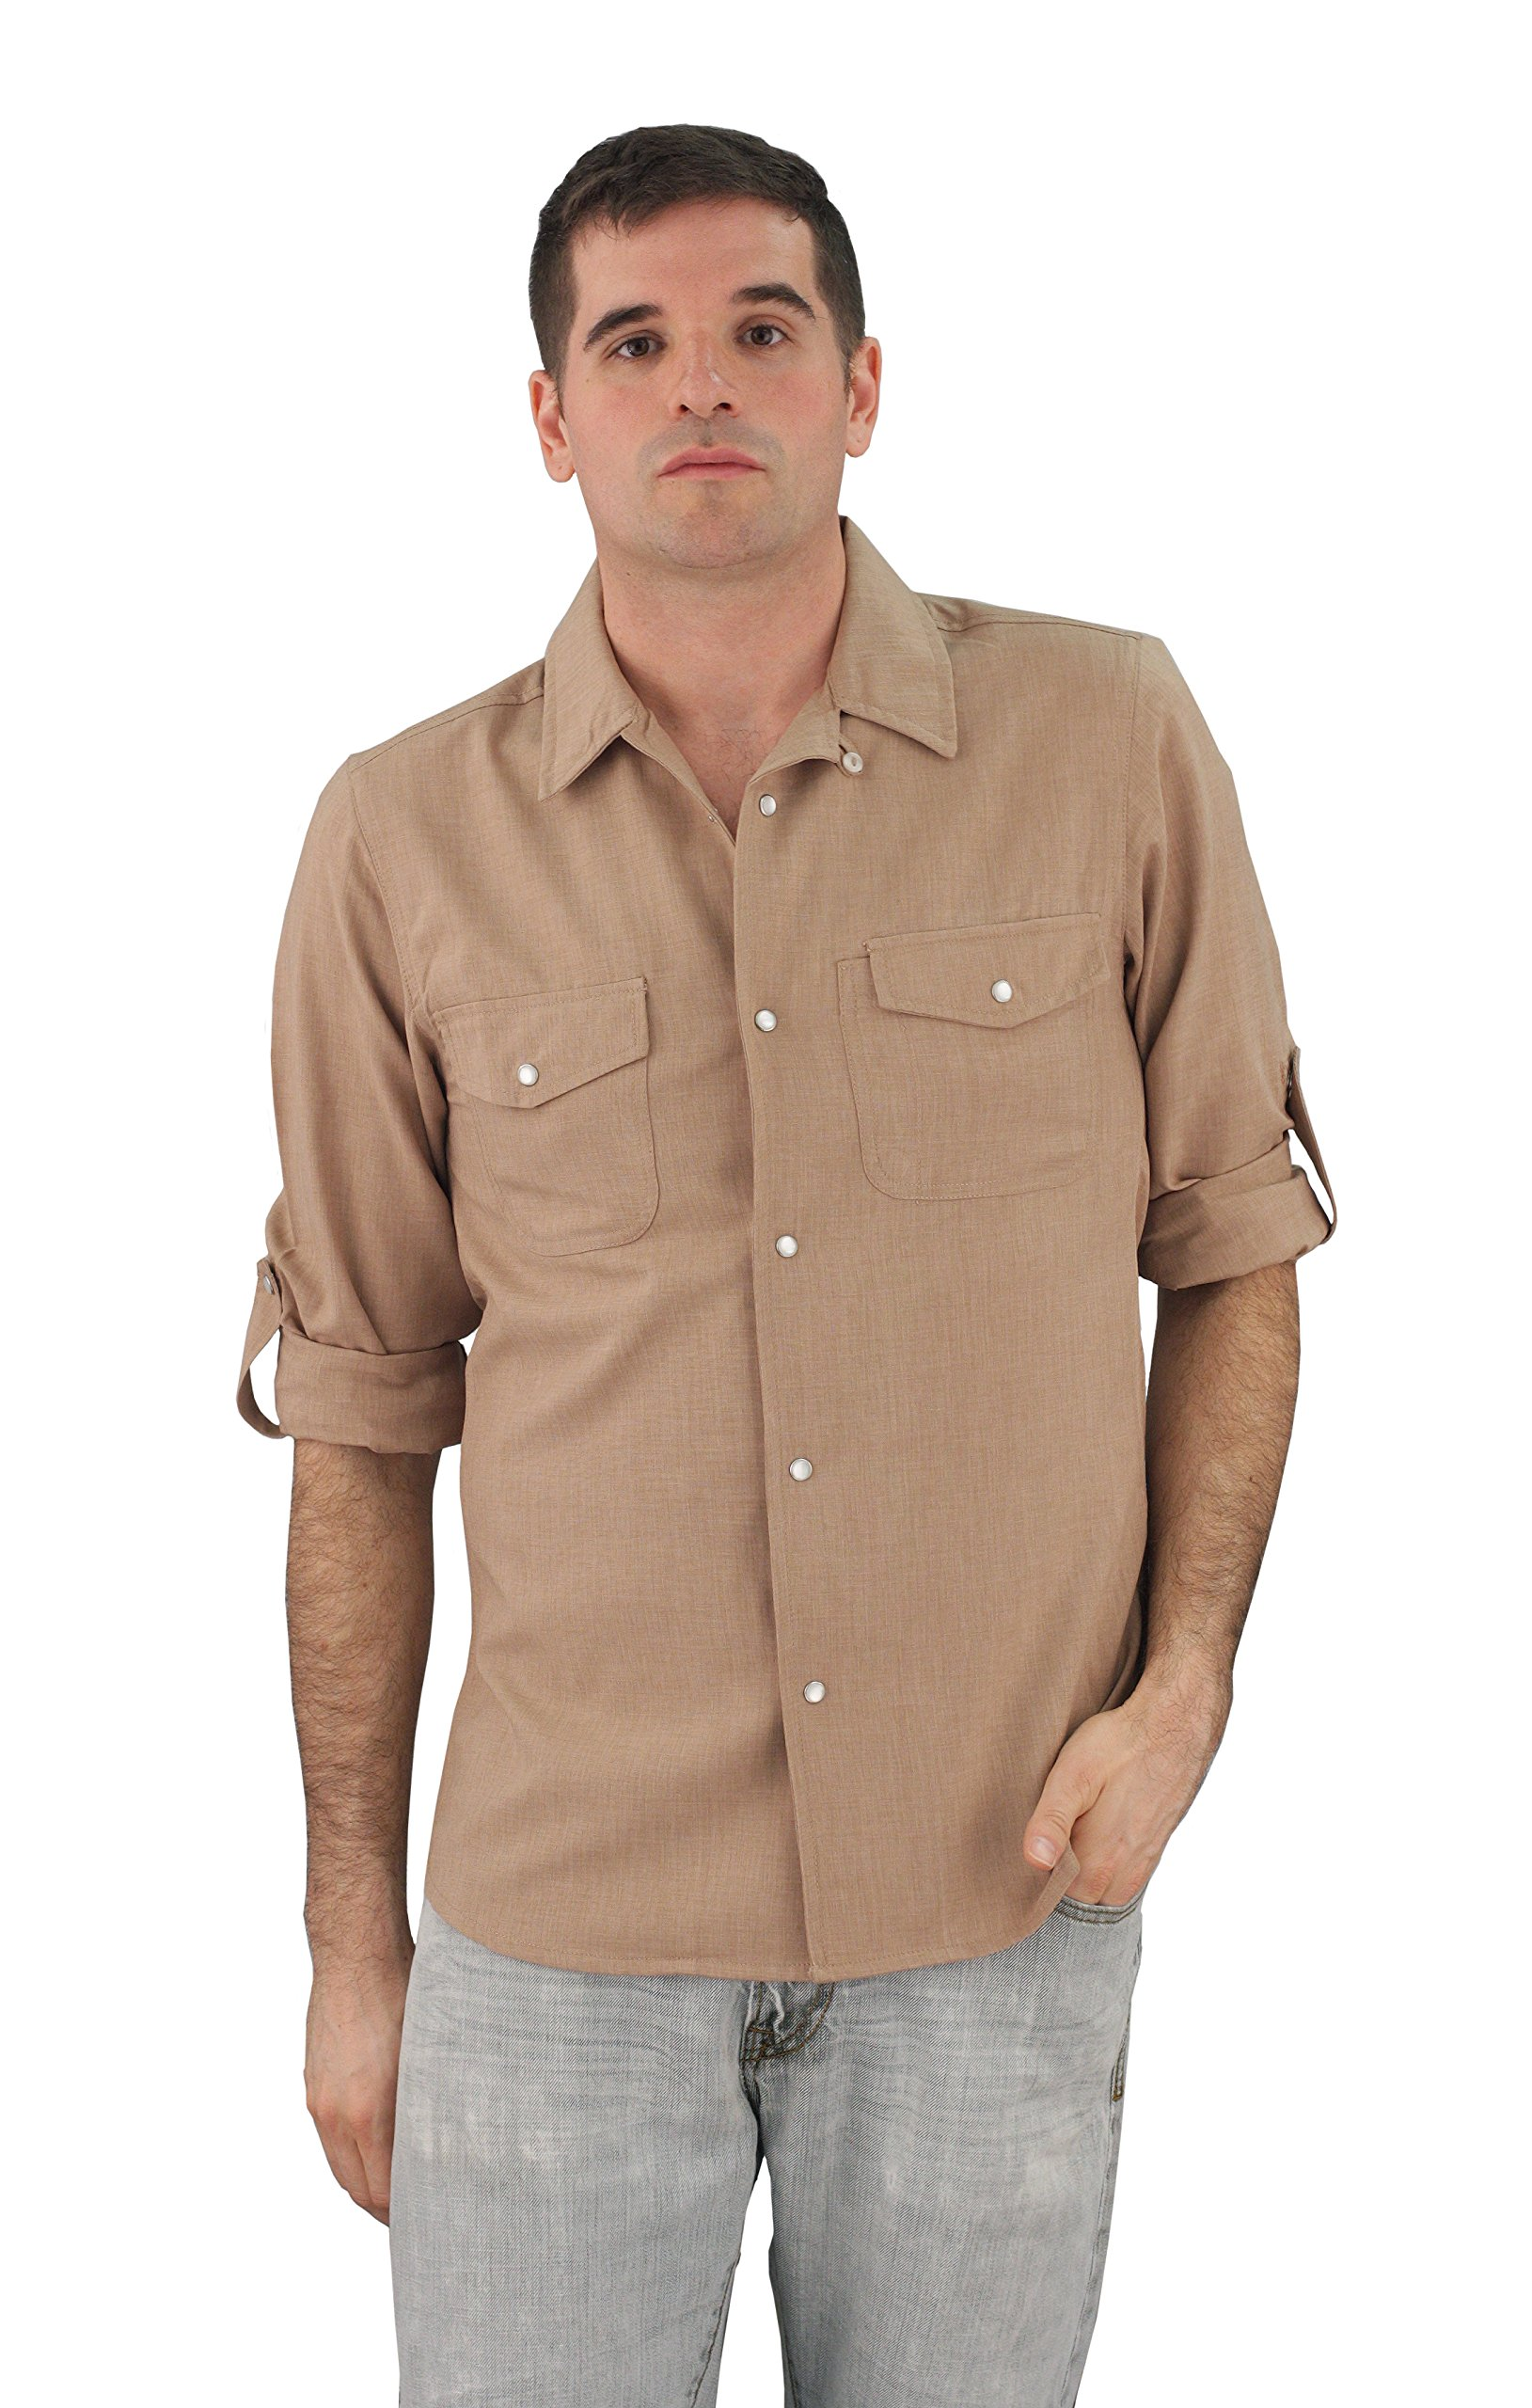 ASD Living Zanzibar Long Sleeve Dry Fit Waitstaff Server Shirt, X-Small, Almond by ASD Living